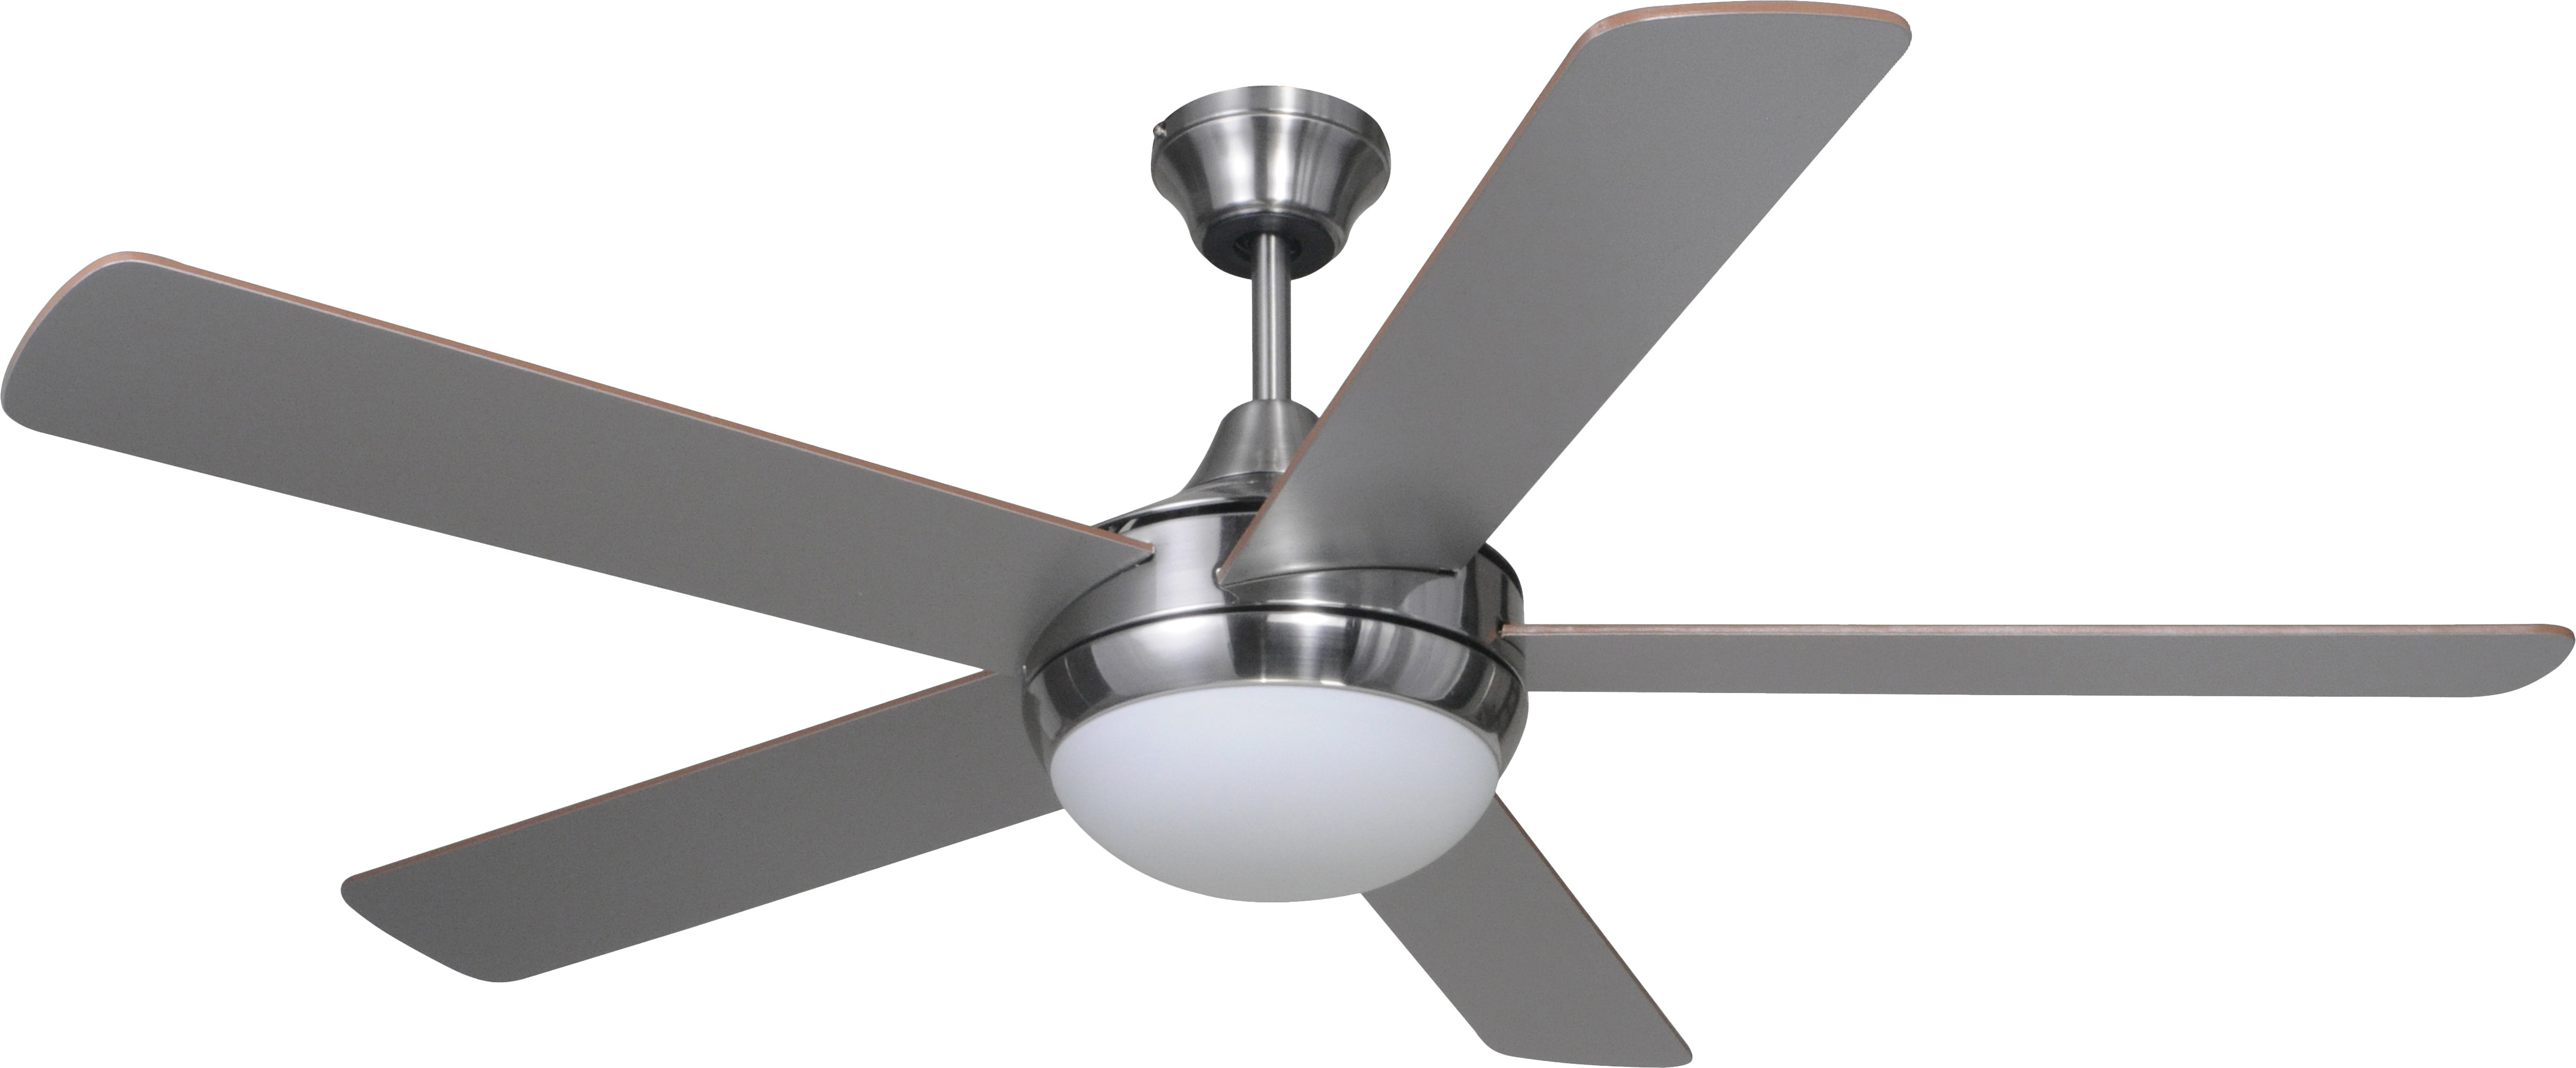 Best And Newest Falco 5 Blade Ceiling Fan With Remote, Light Kit Included Pertaining To Calkins 5 Blade Ceiling Fans (View 9 of 20)